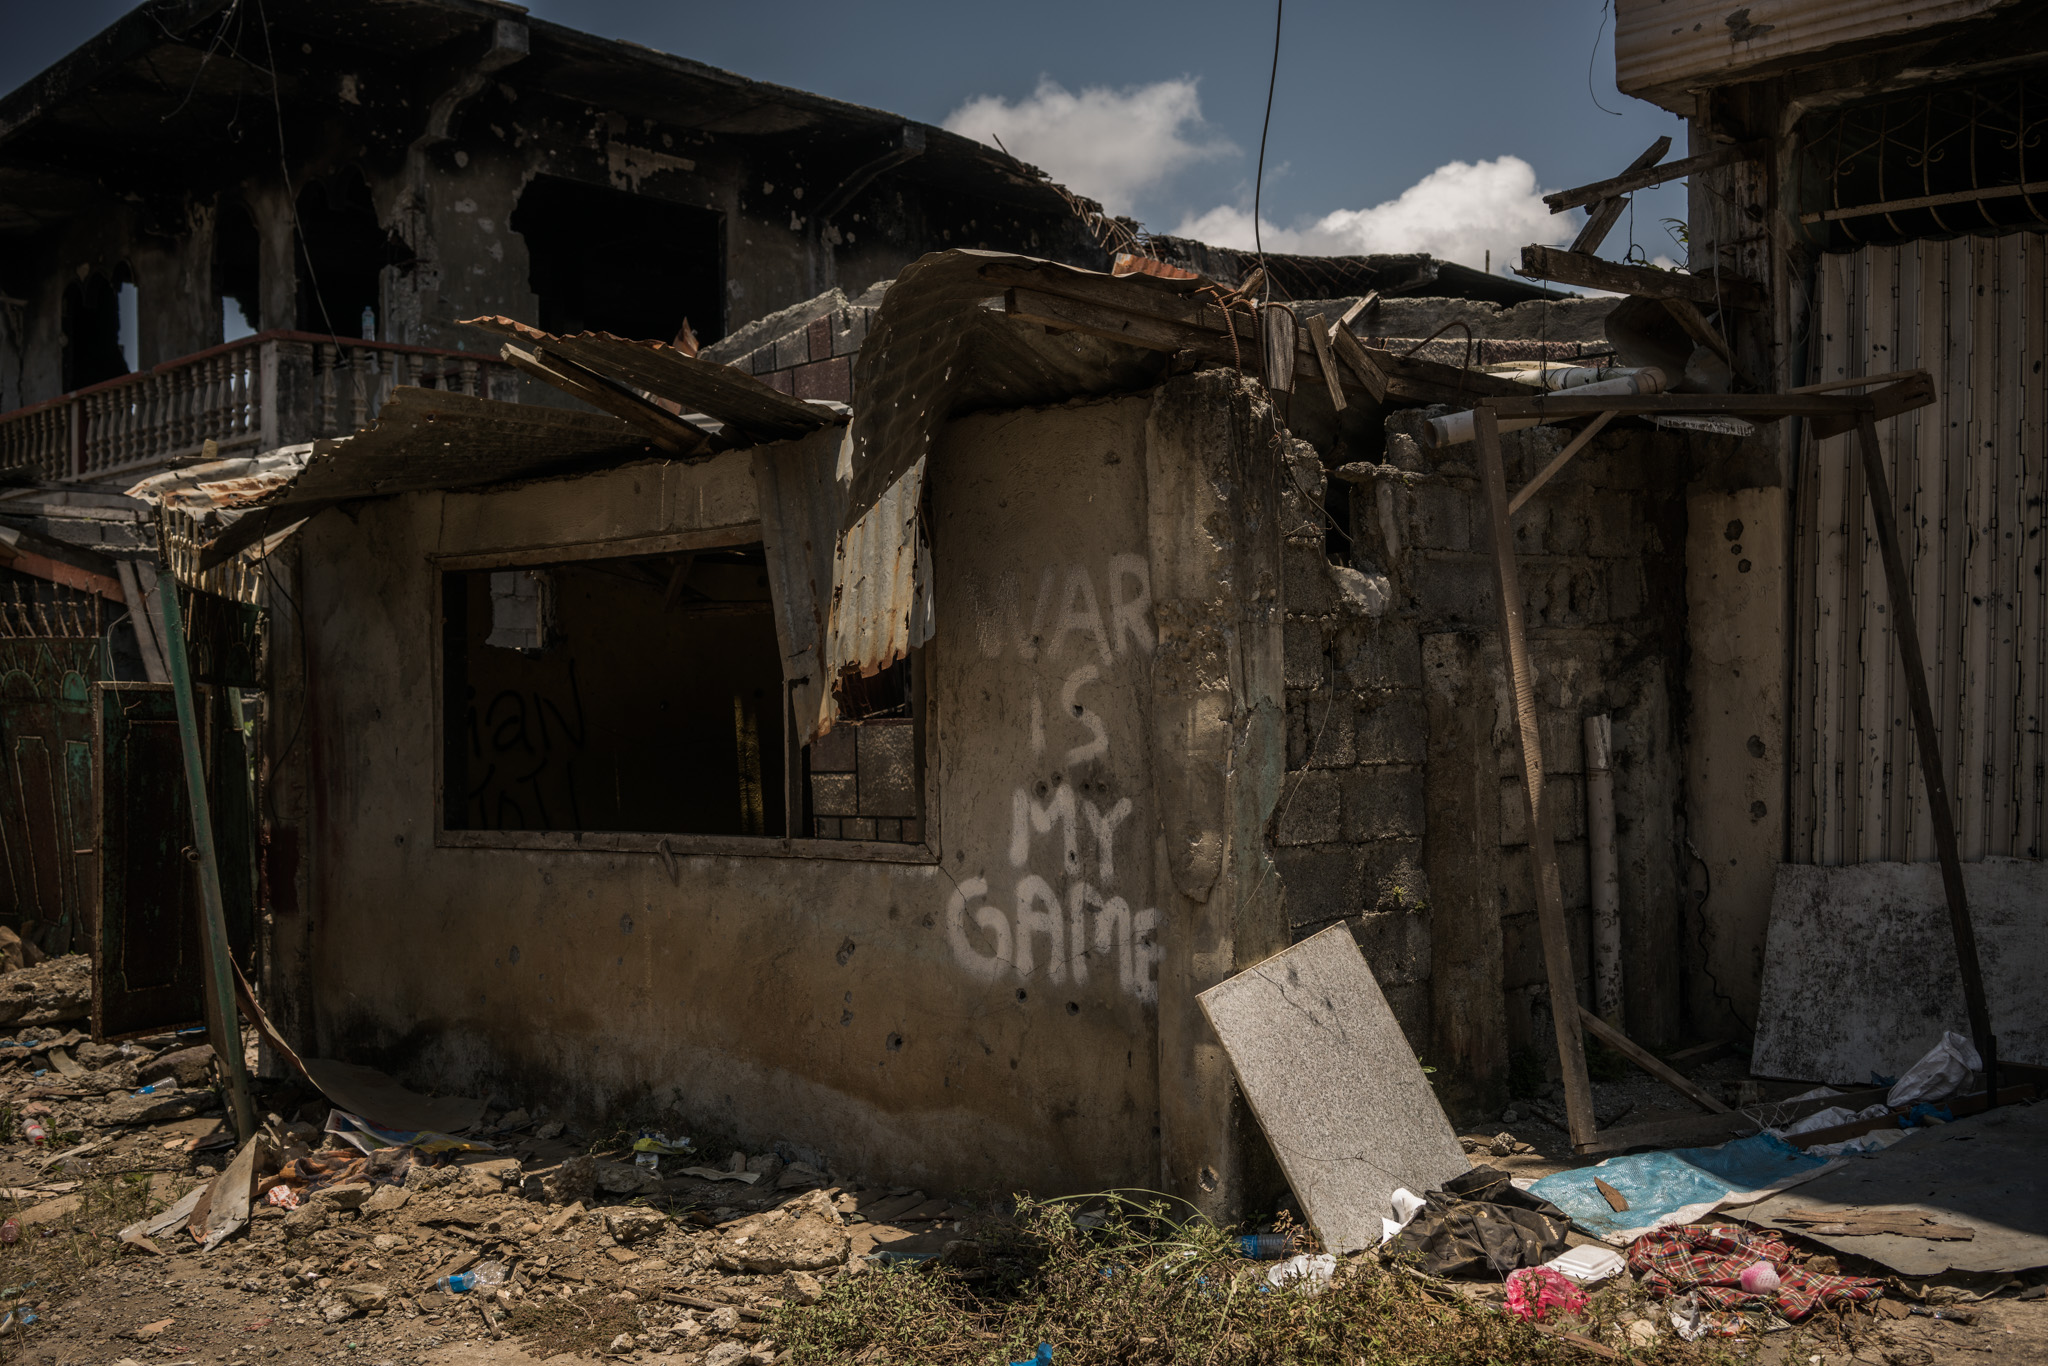 RUINS. Marawi residents come home to almost nothing on April 7, 2018, over 5 months after the city'u0080u0099s liberation. They find their life'u0080u0099s work either destroyed, burnt, or looted. Photo by Martin San Diego/Rappler